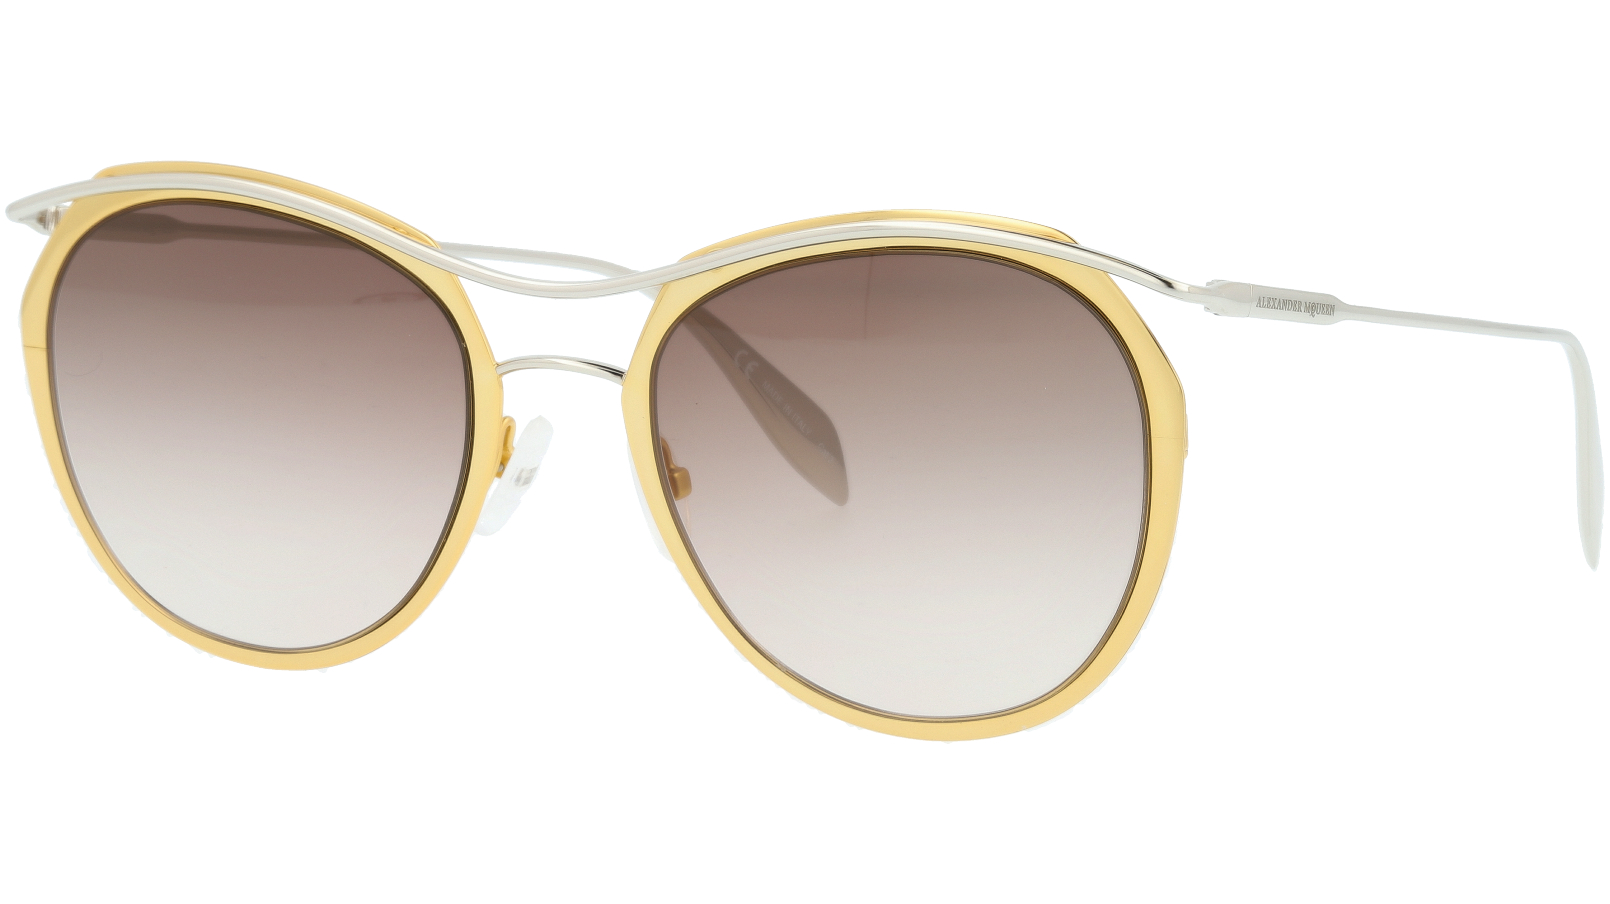 ALEXANDER MCQUEEN AM0116S 002 54 GOLD Sunglasses